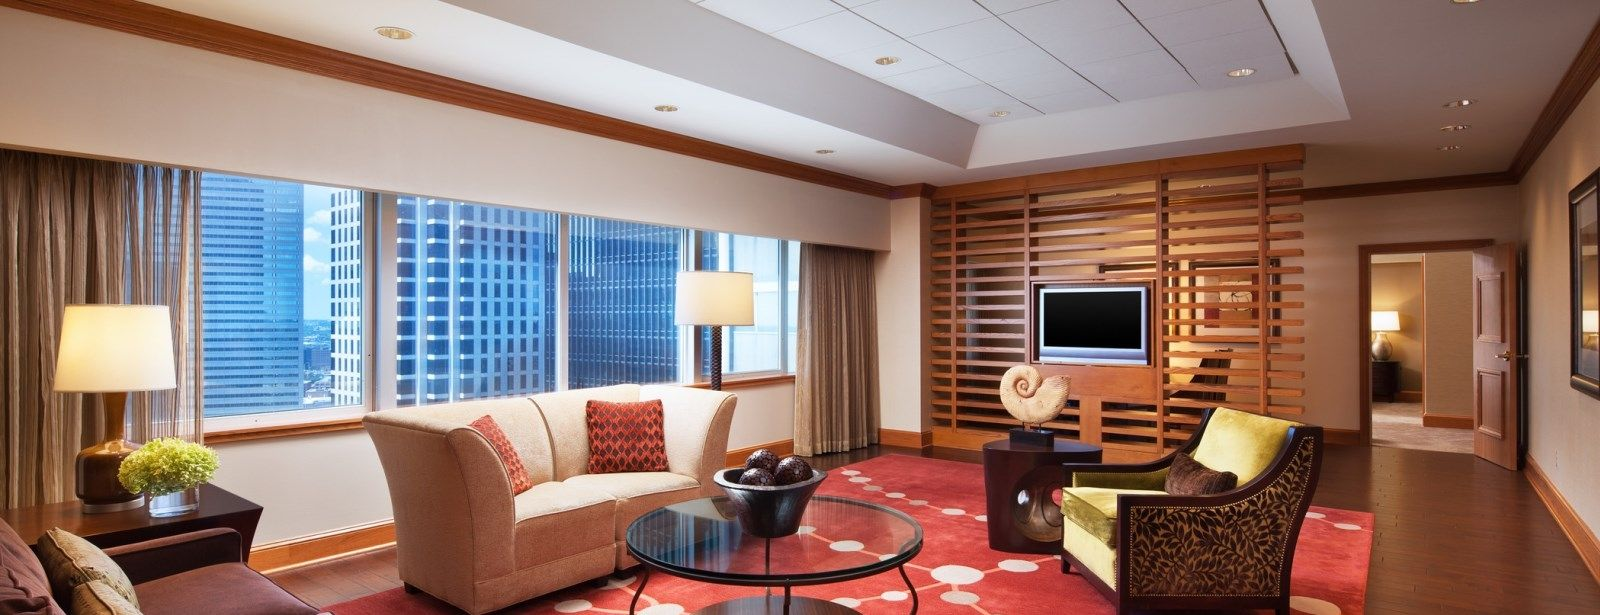 Downtown Dallas Hotel Rooms - Sheraton Dallas Hotel